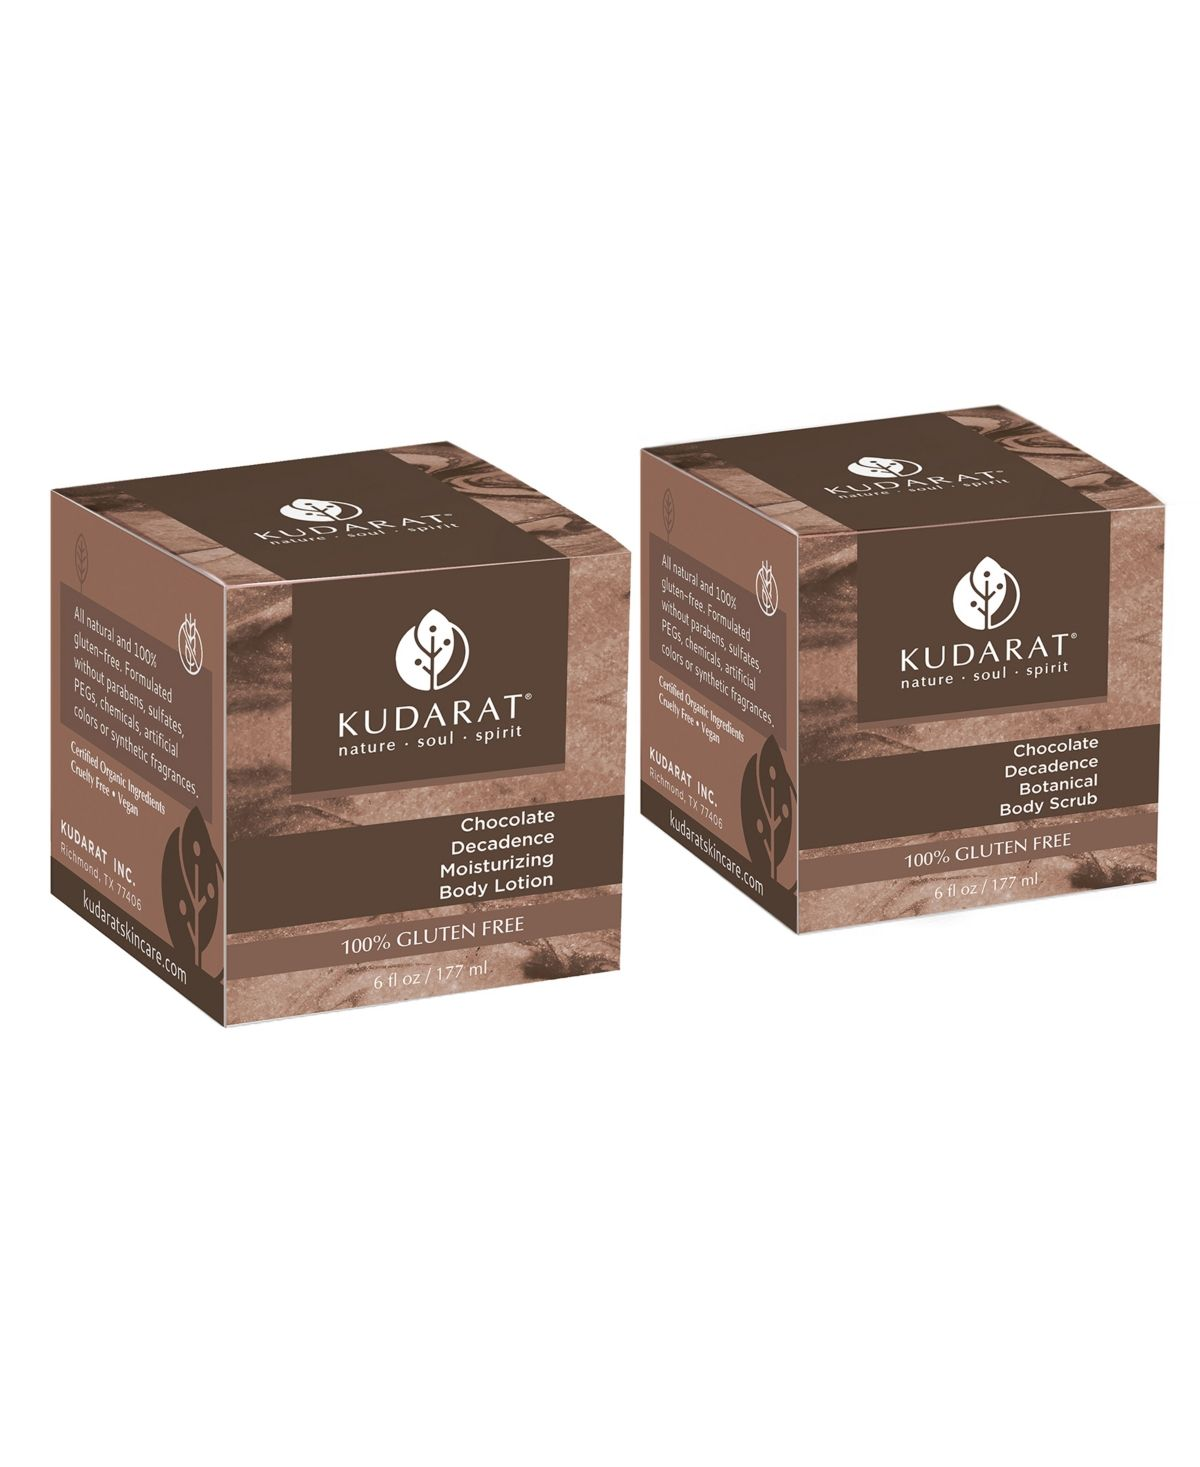 Kudarat Chocolate Decadence Body Care Duo, 12 oz